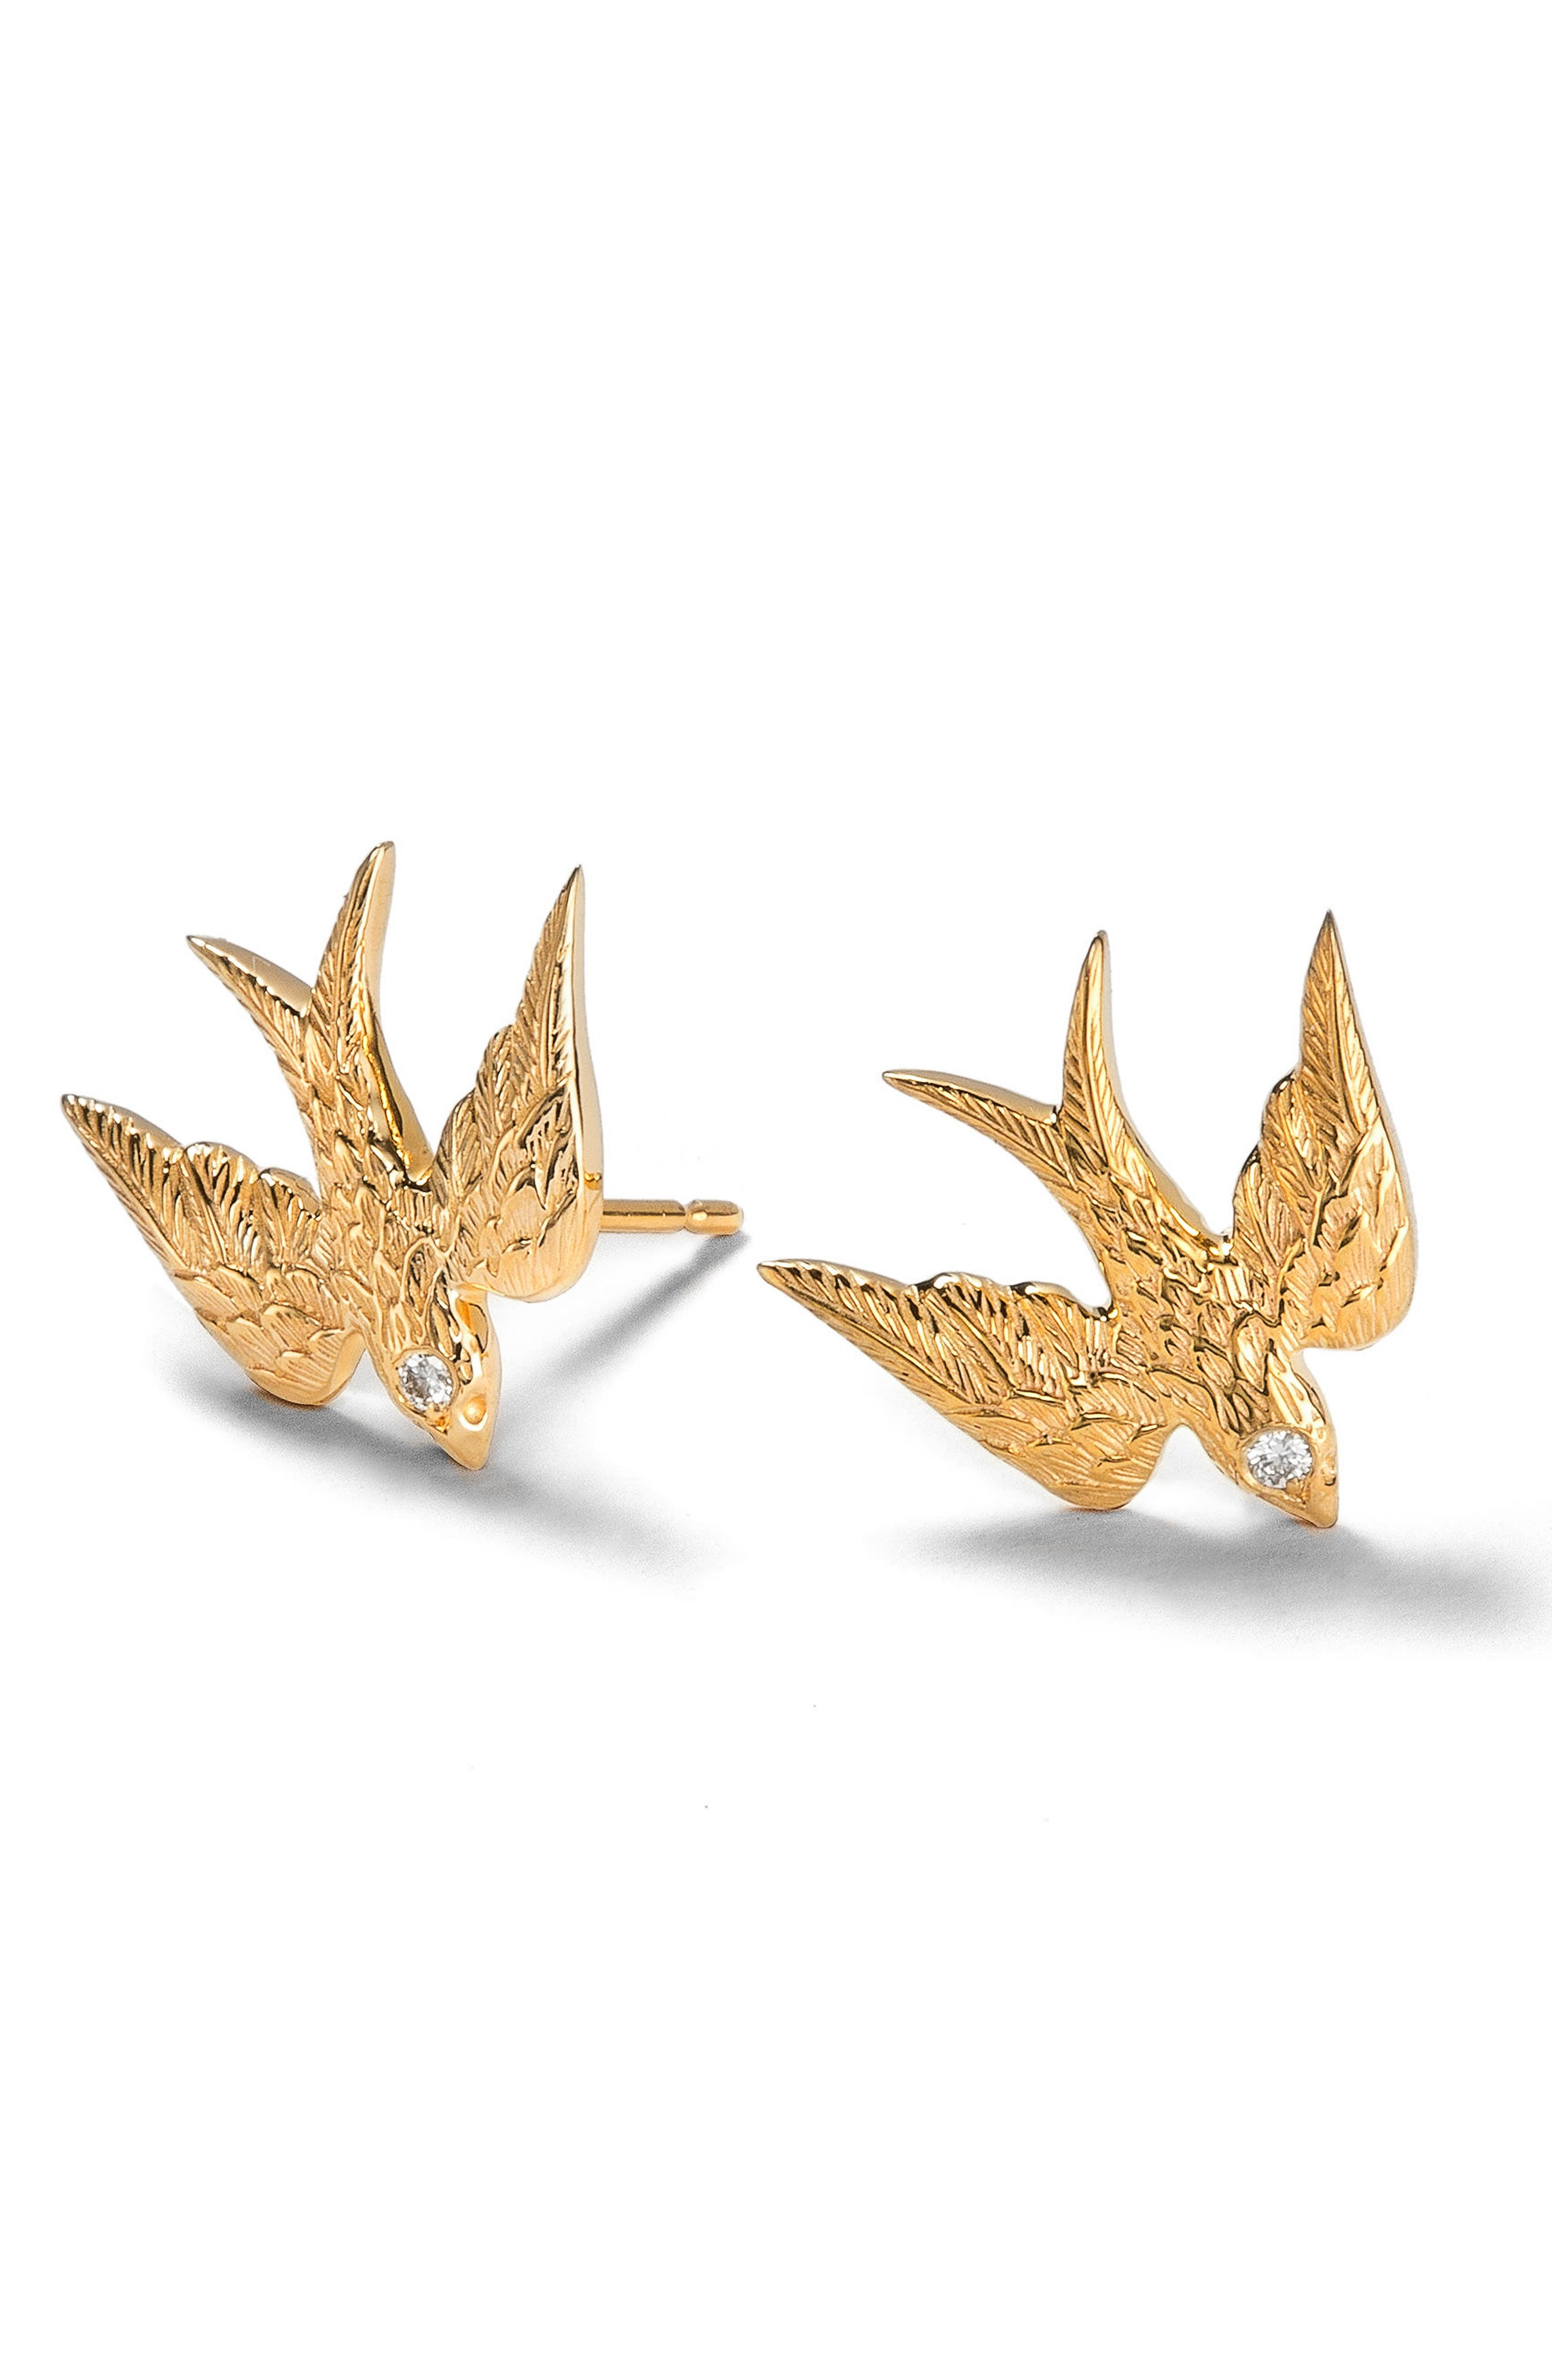 Nora Kogan Feathered Diamond Swallow Stud Earrings